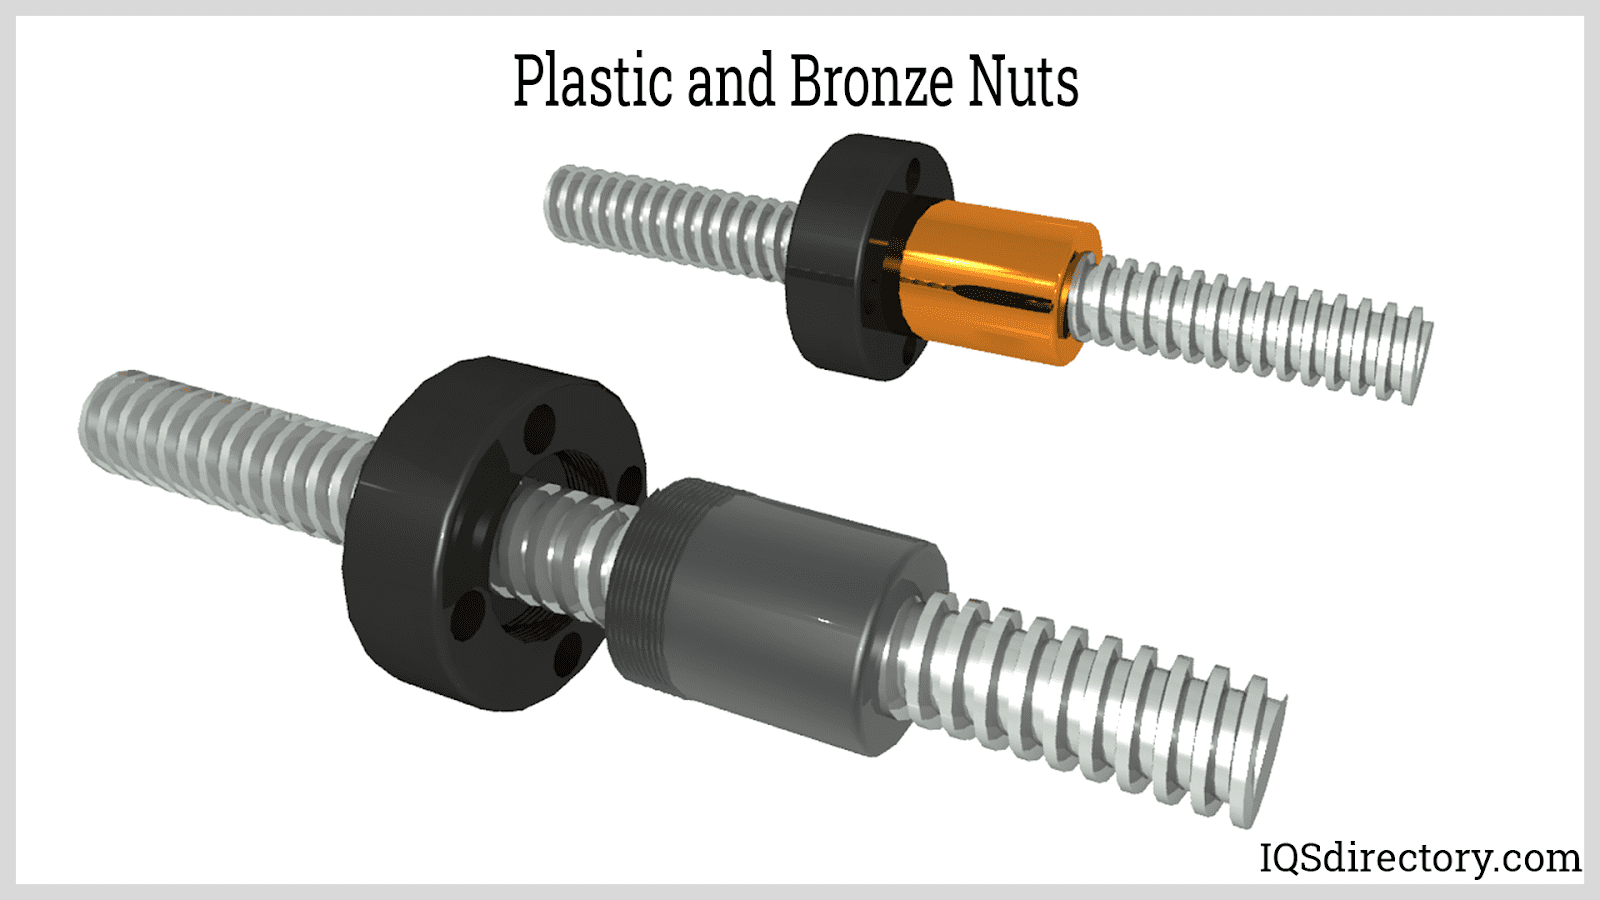 Plastic and Bronze Nuts